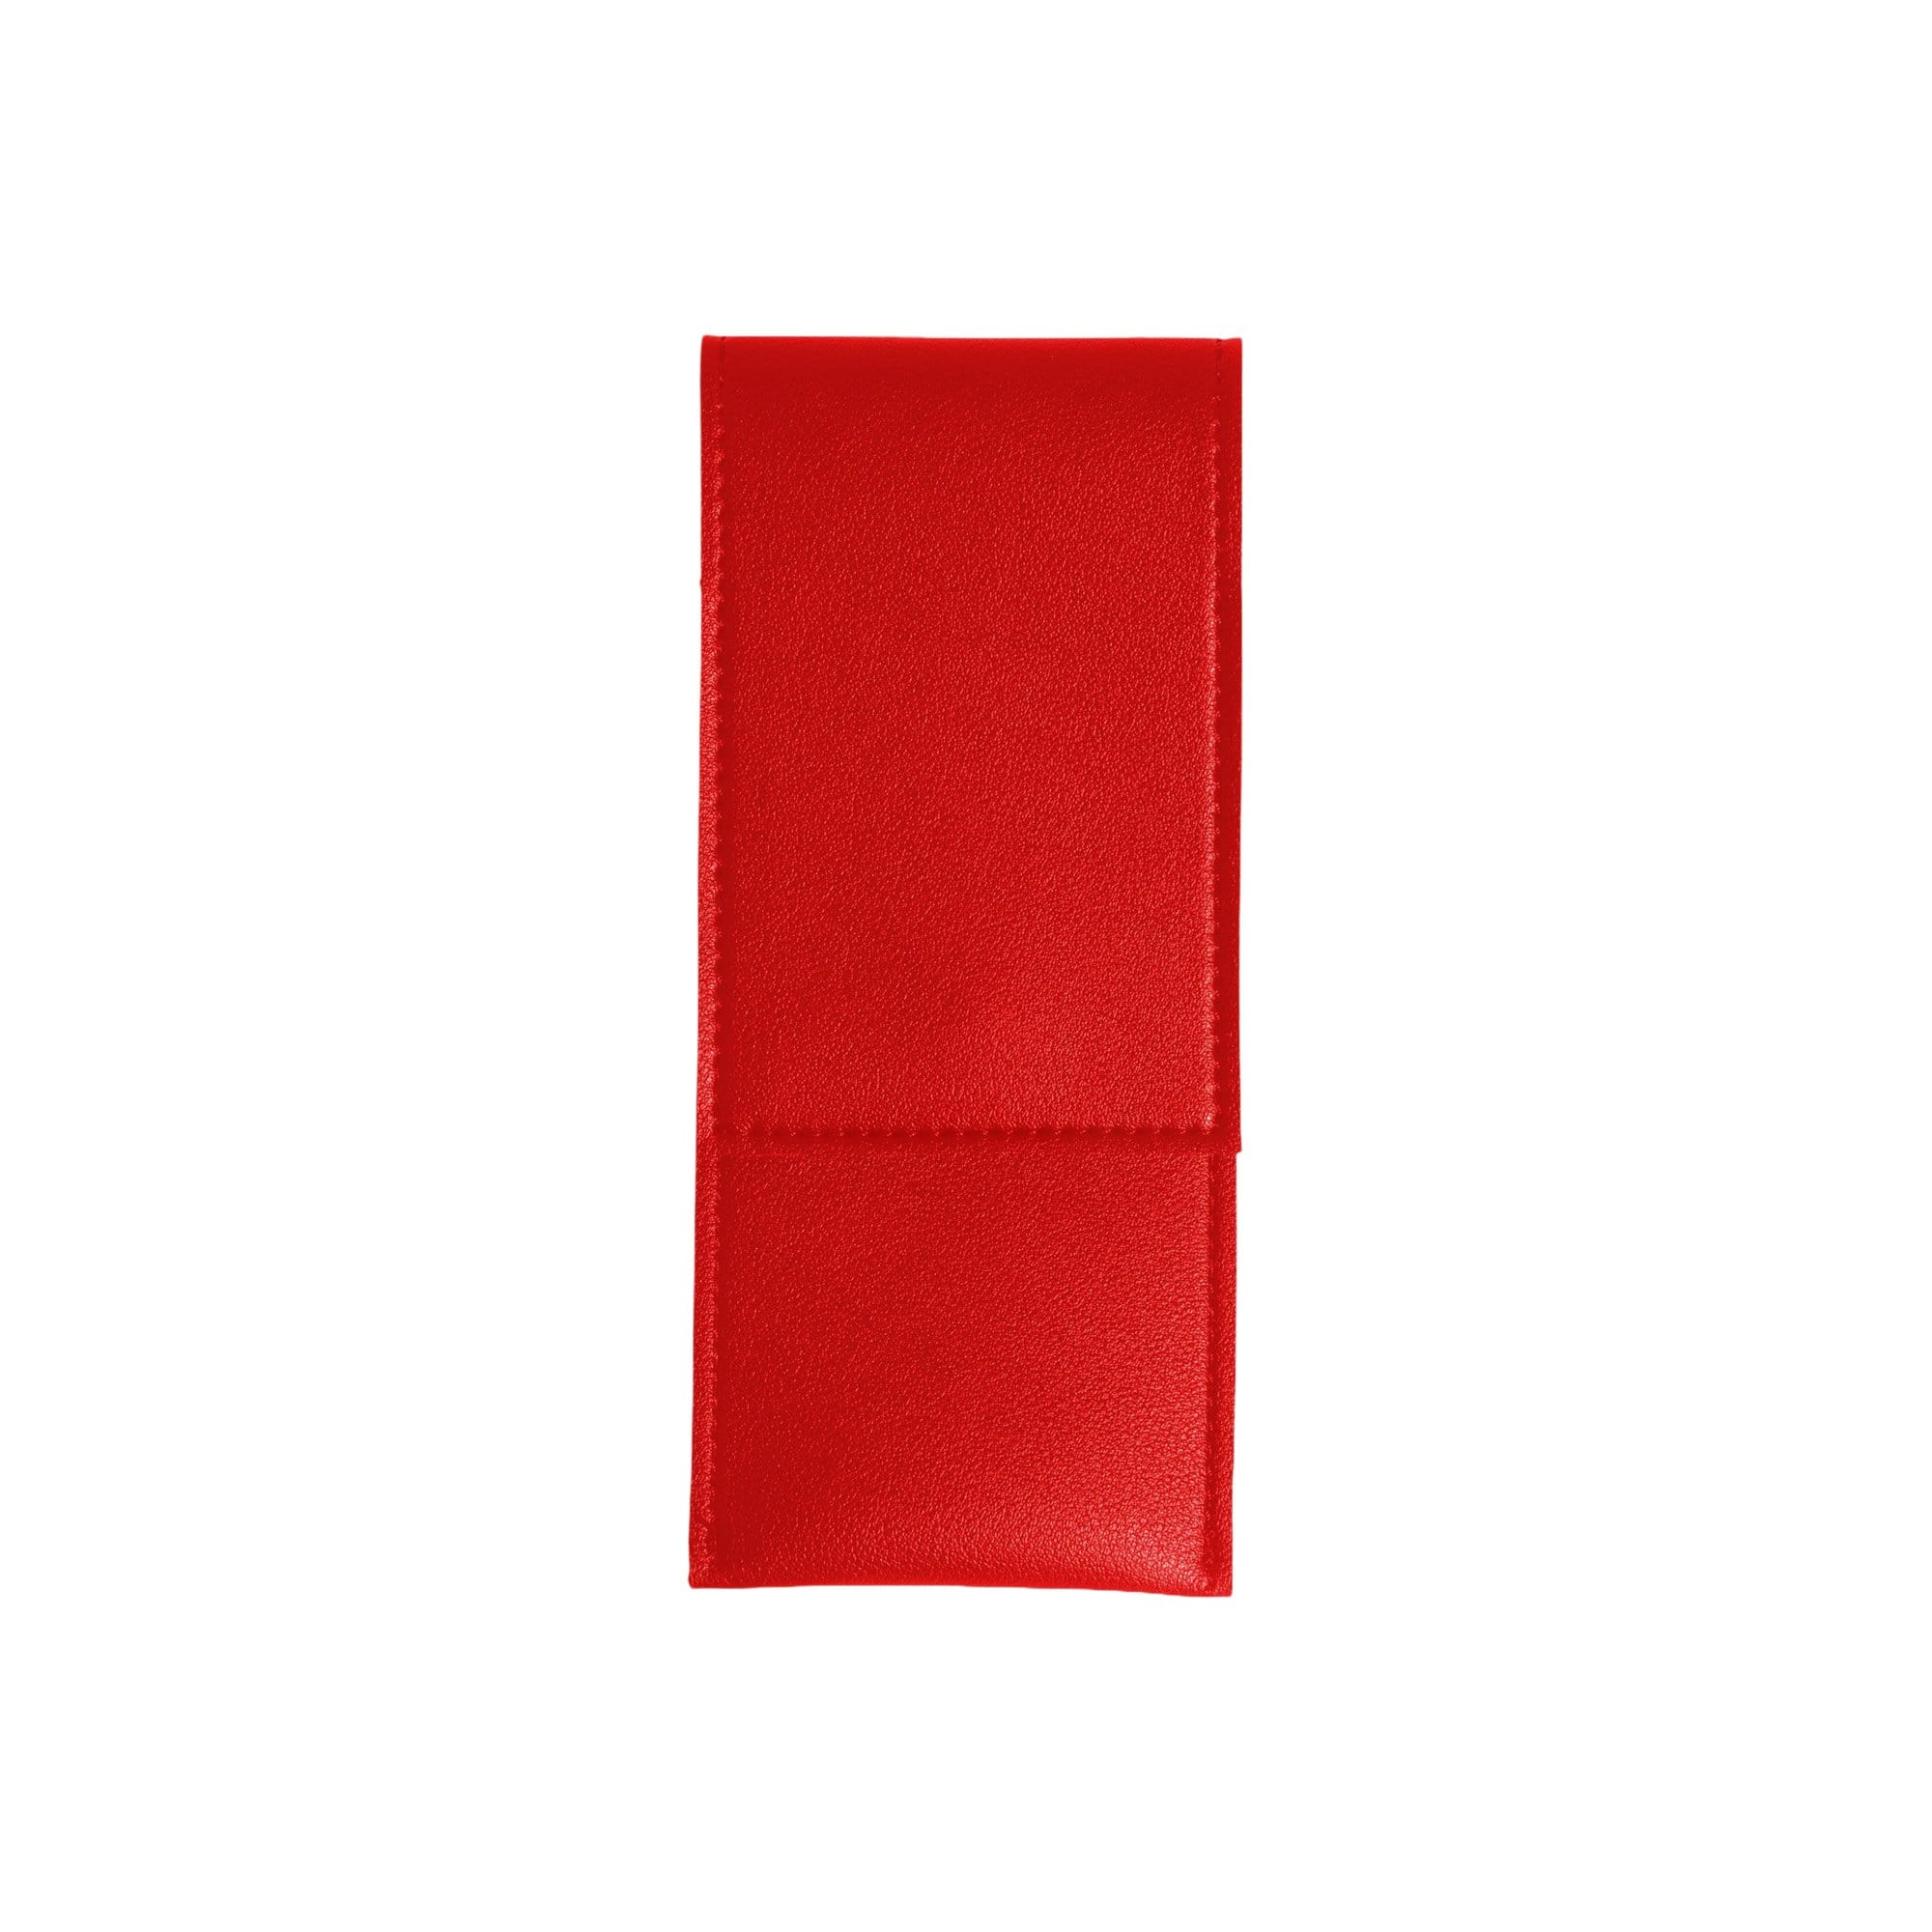 Elastic Minimalist Pen Pouch in Red